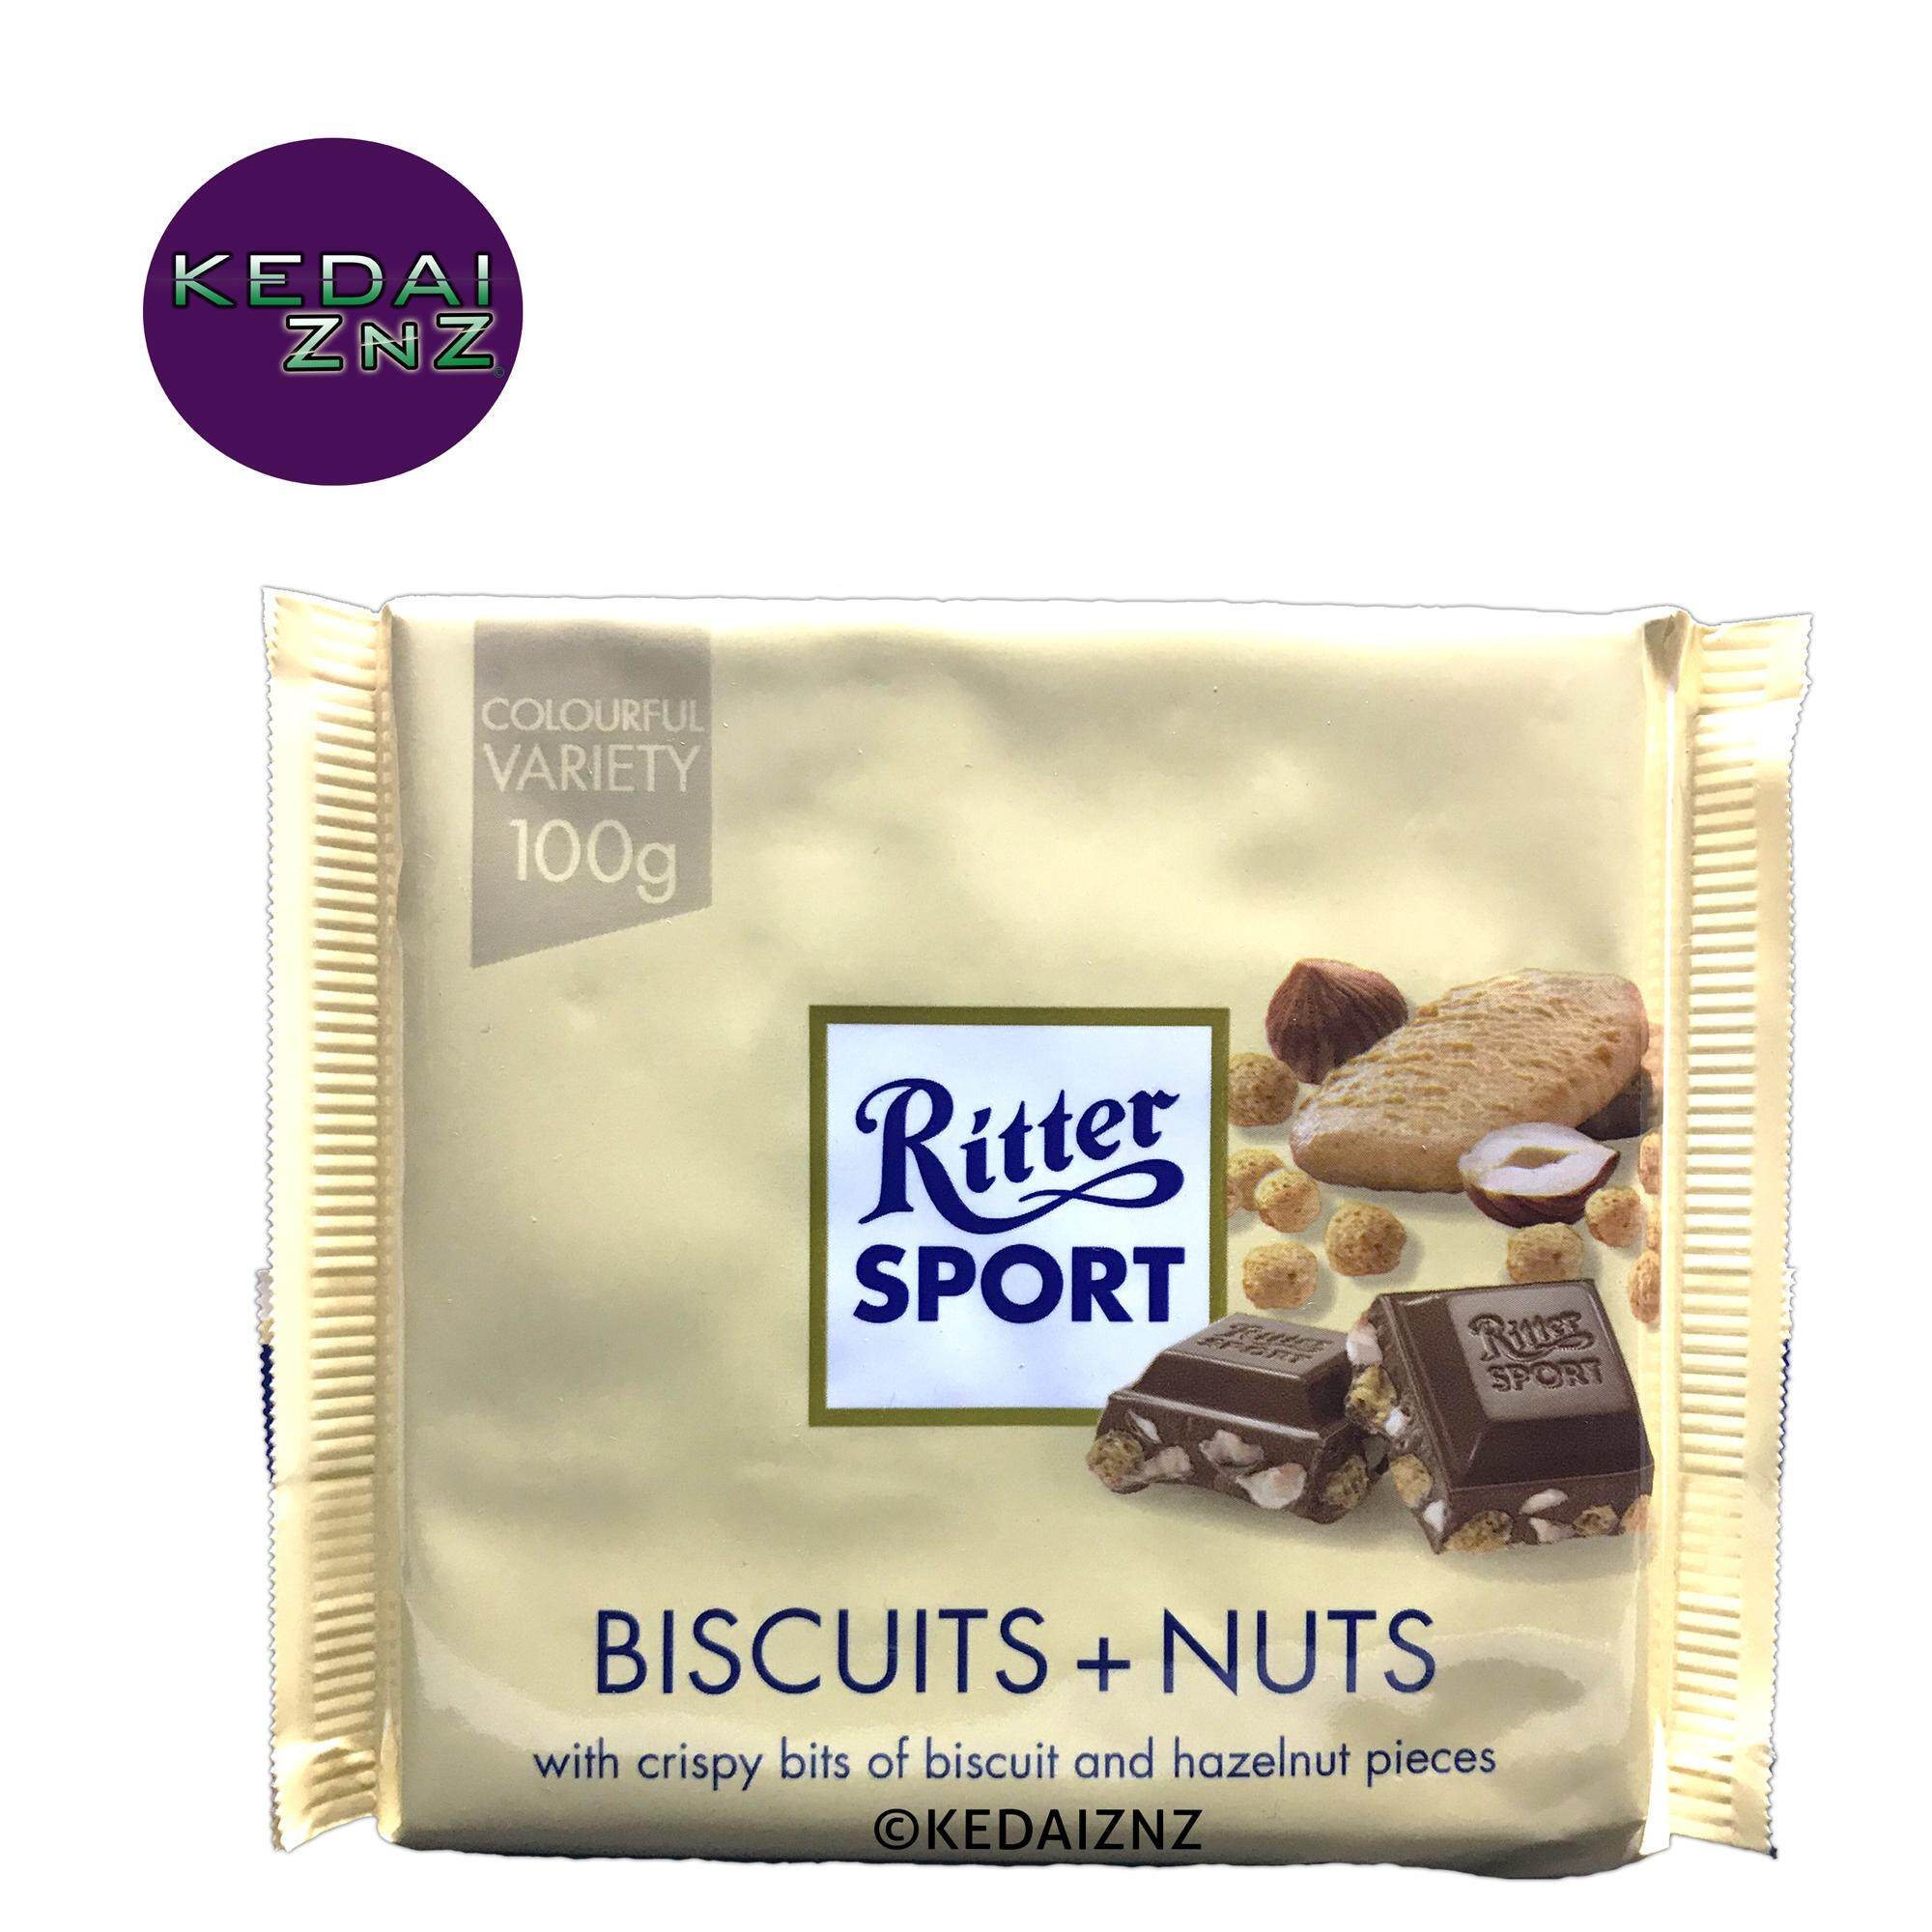 Chocolate Ritter SPORT Biscuits and Nuts Chocolate Bar 100g Coklat